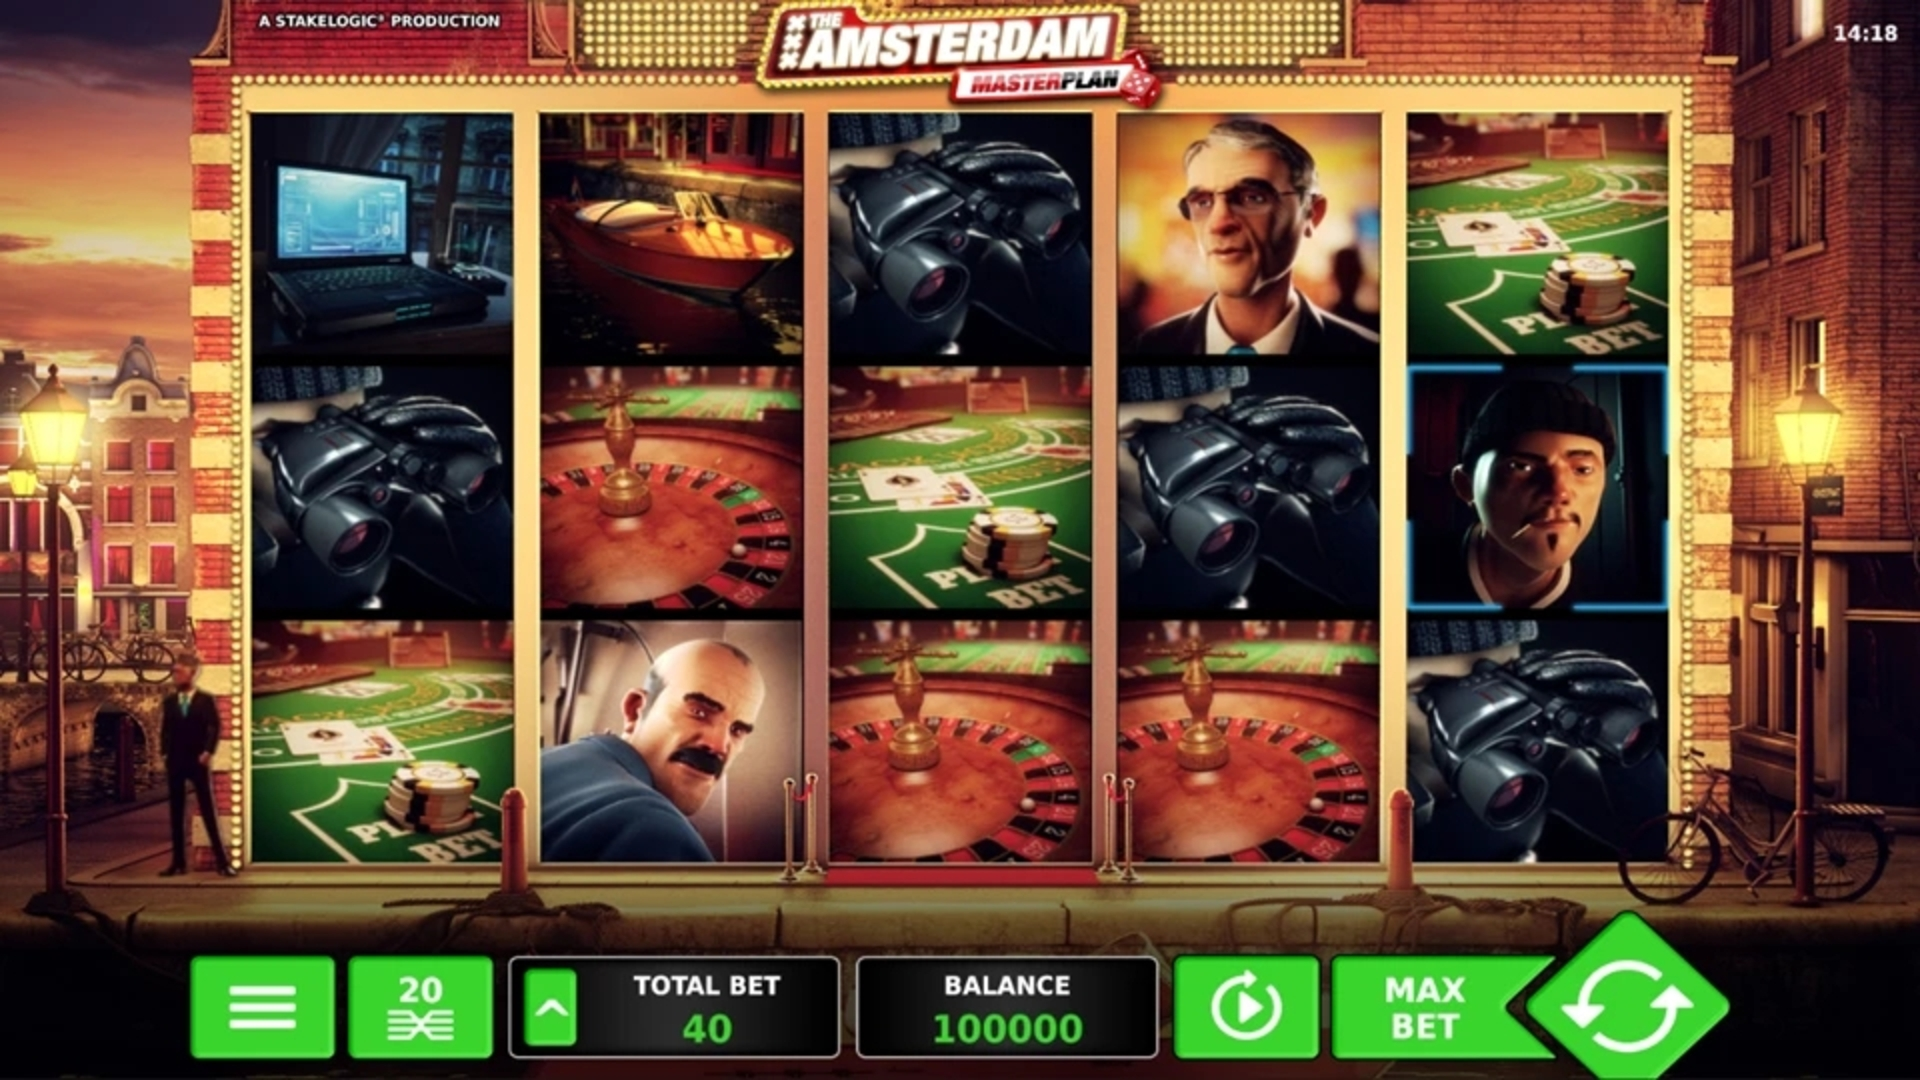 The The Amsterdam Masterplan Online Slot Demo Game by StakeLogic